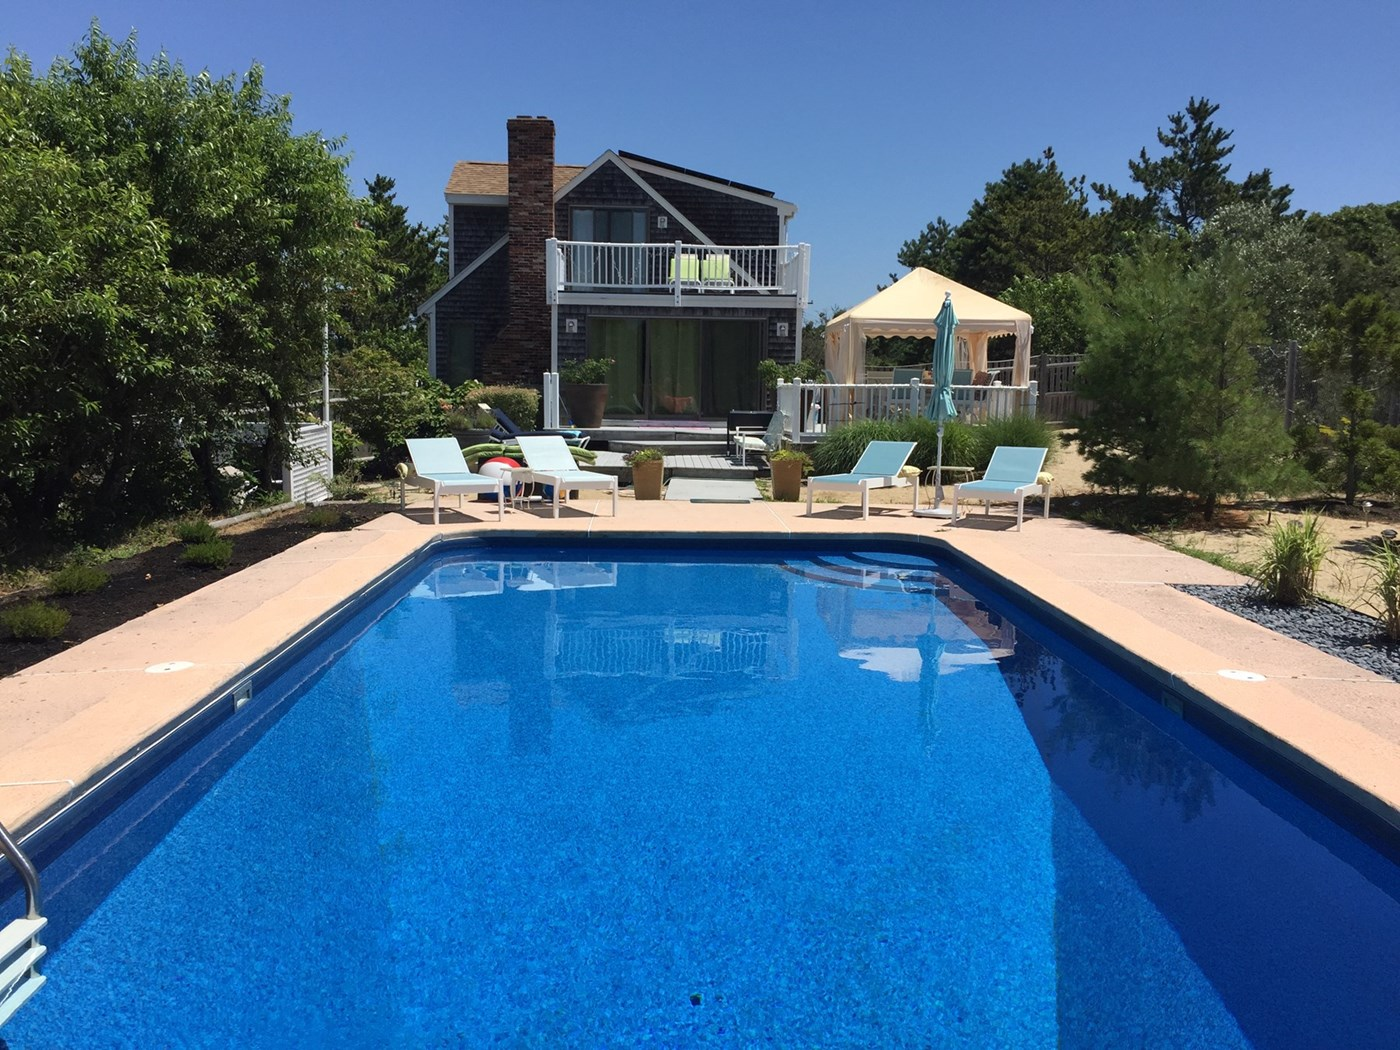 Eastham Vacation Rental home in Cape Cod MA, Prop extends to